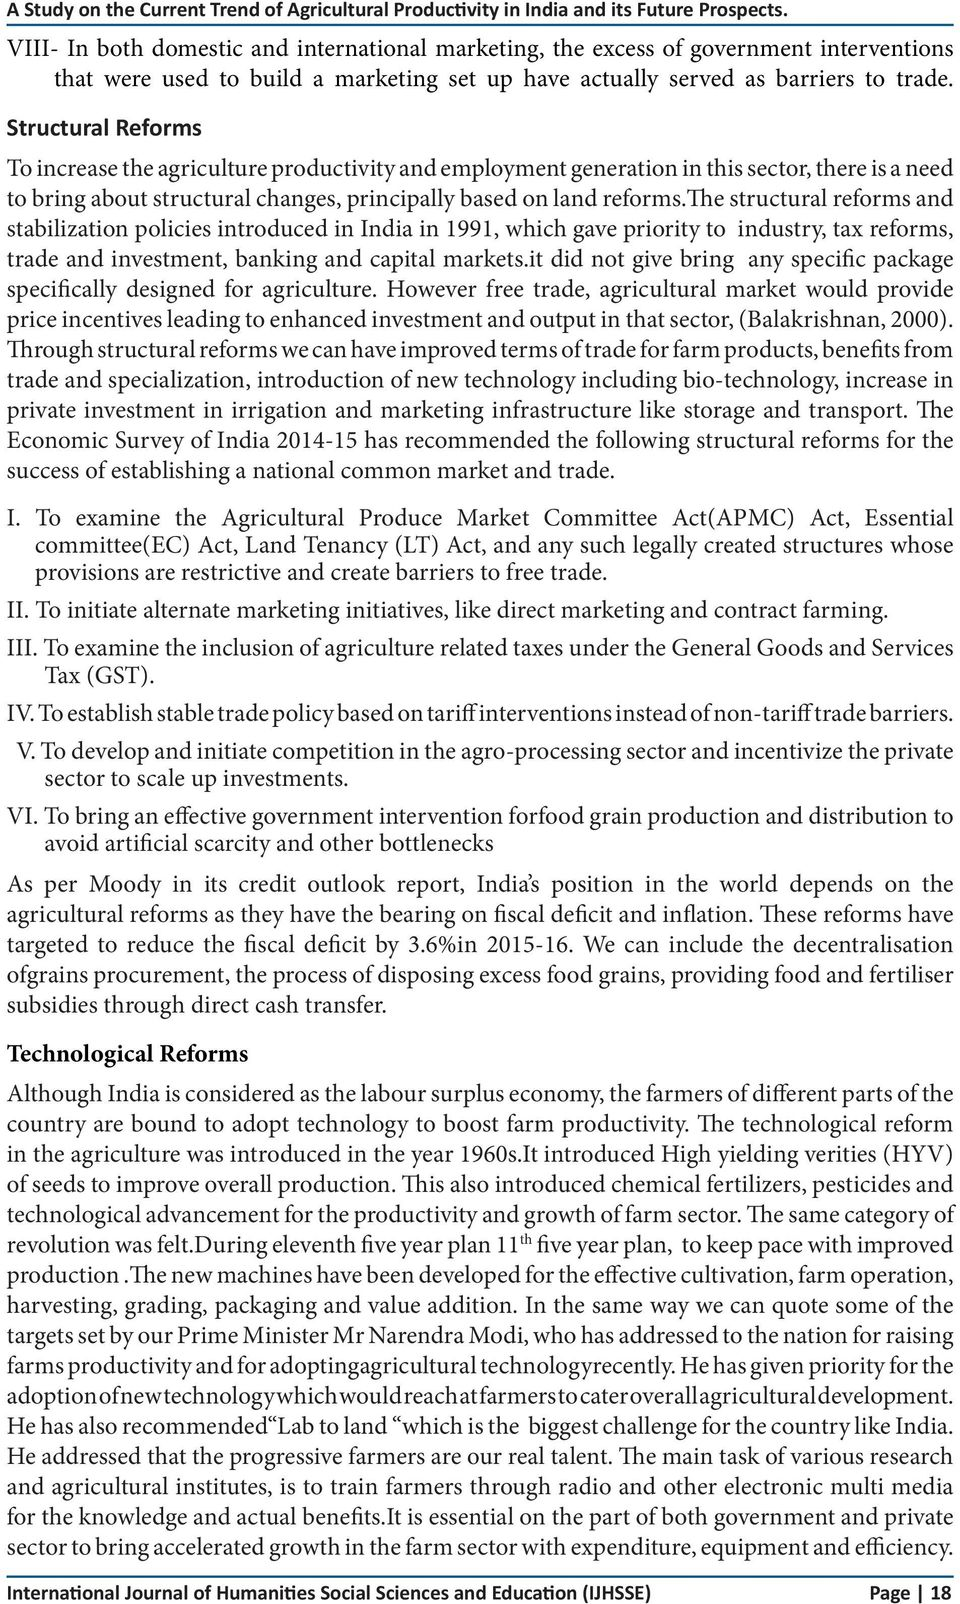 A Study on the Current Trend of Agricultural Productivity in